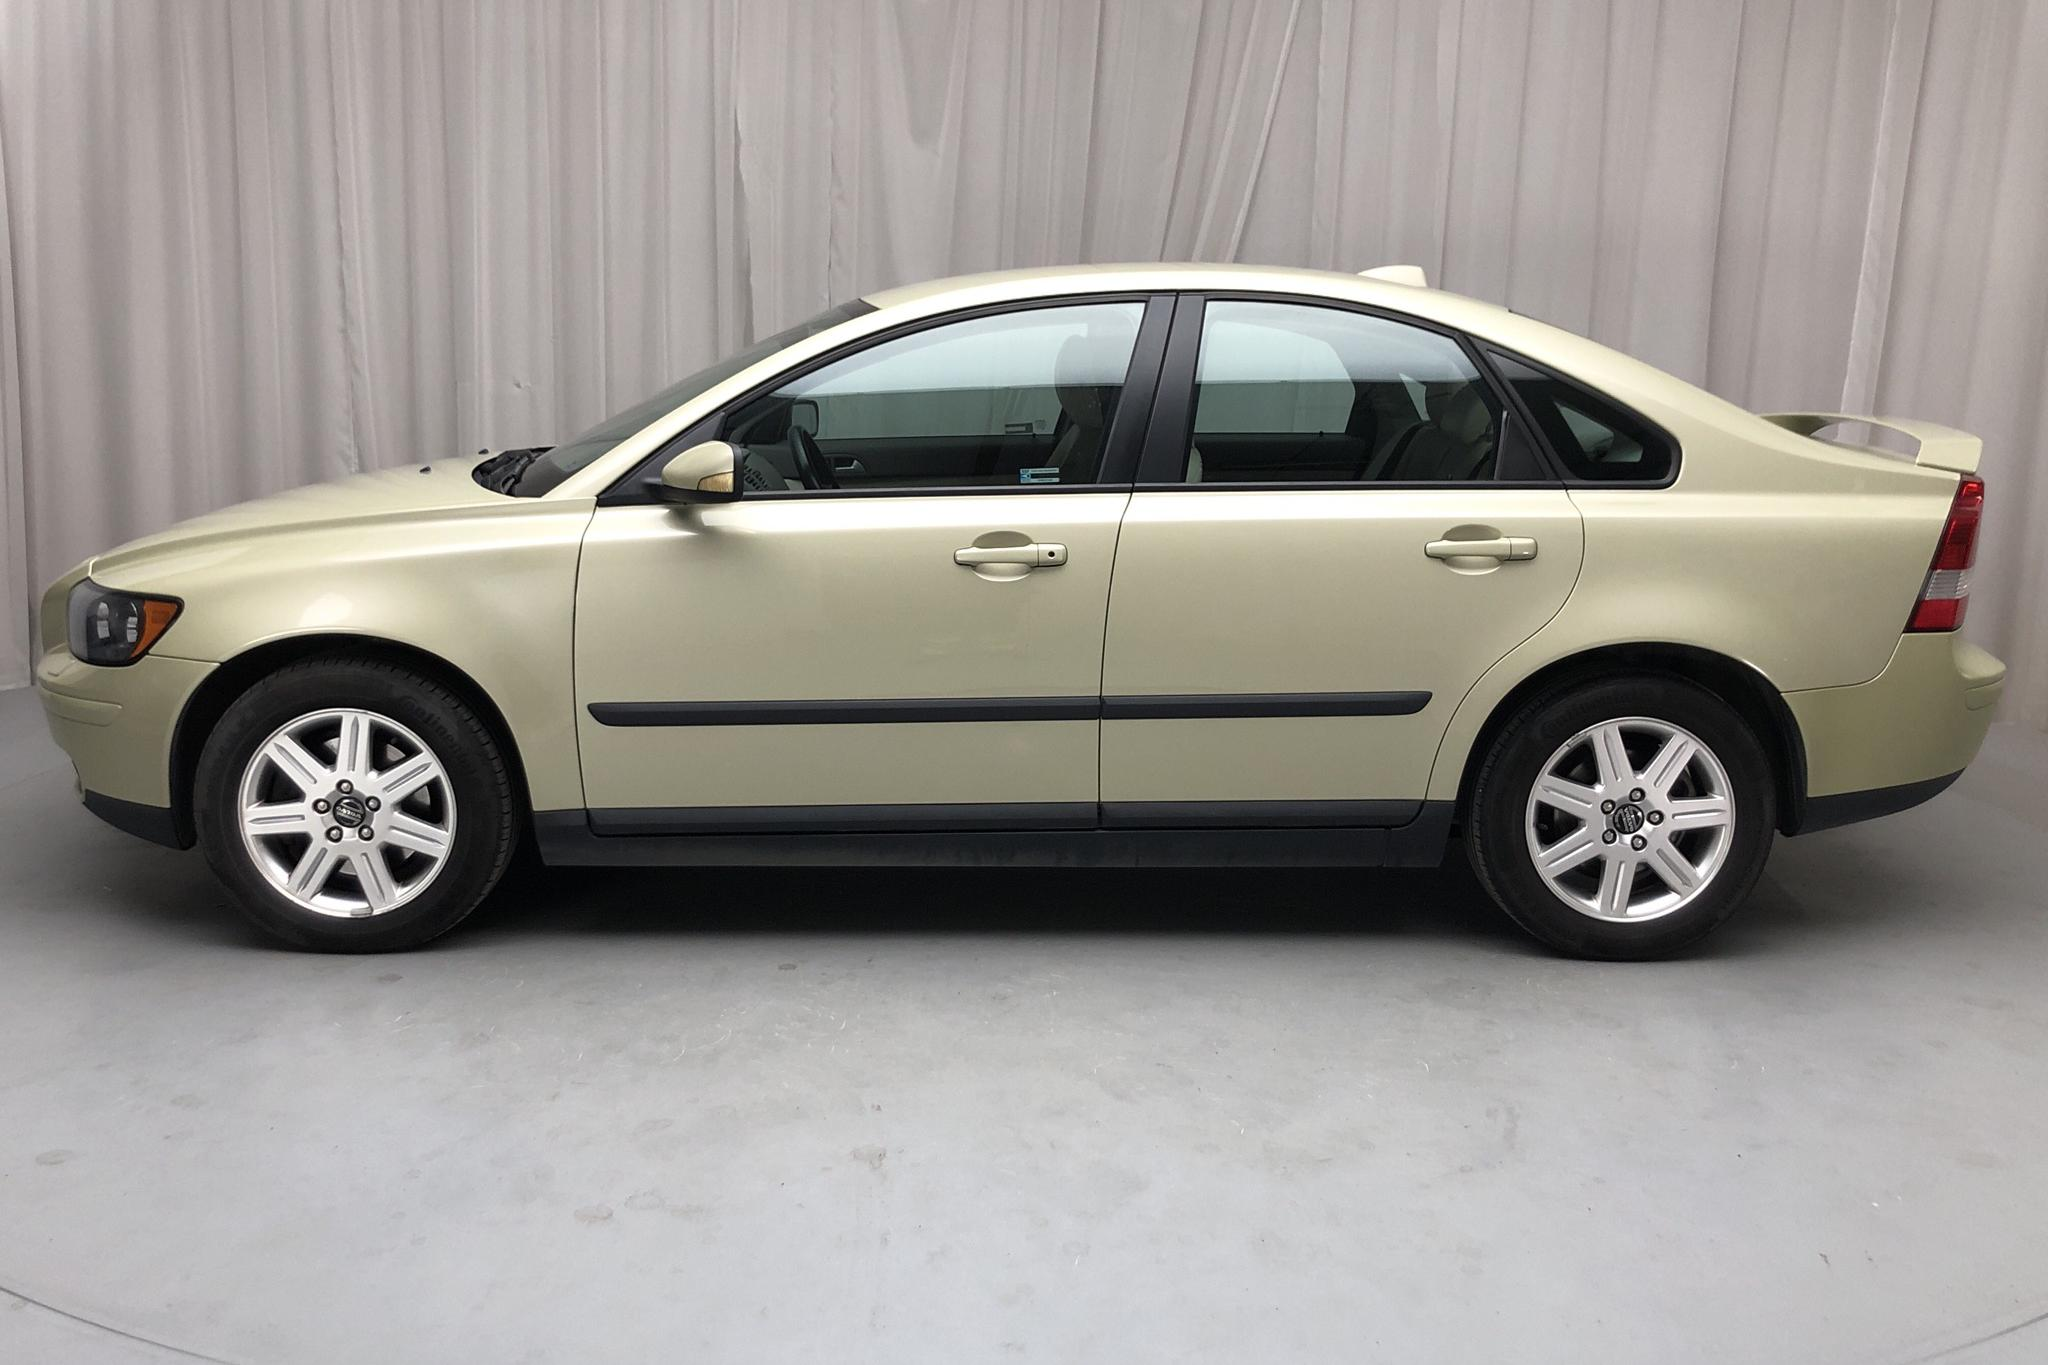 Volvo S40 2.0D (136hk) - 128 570 km - Manual - Light Green - 2005